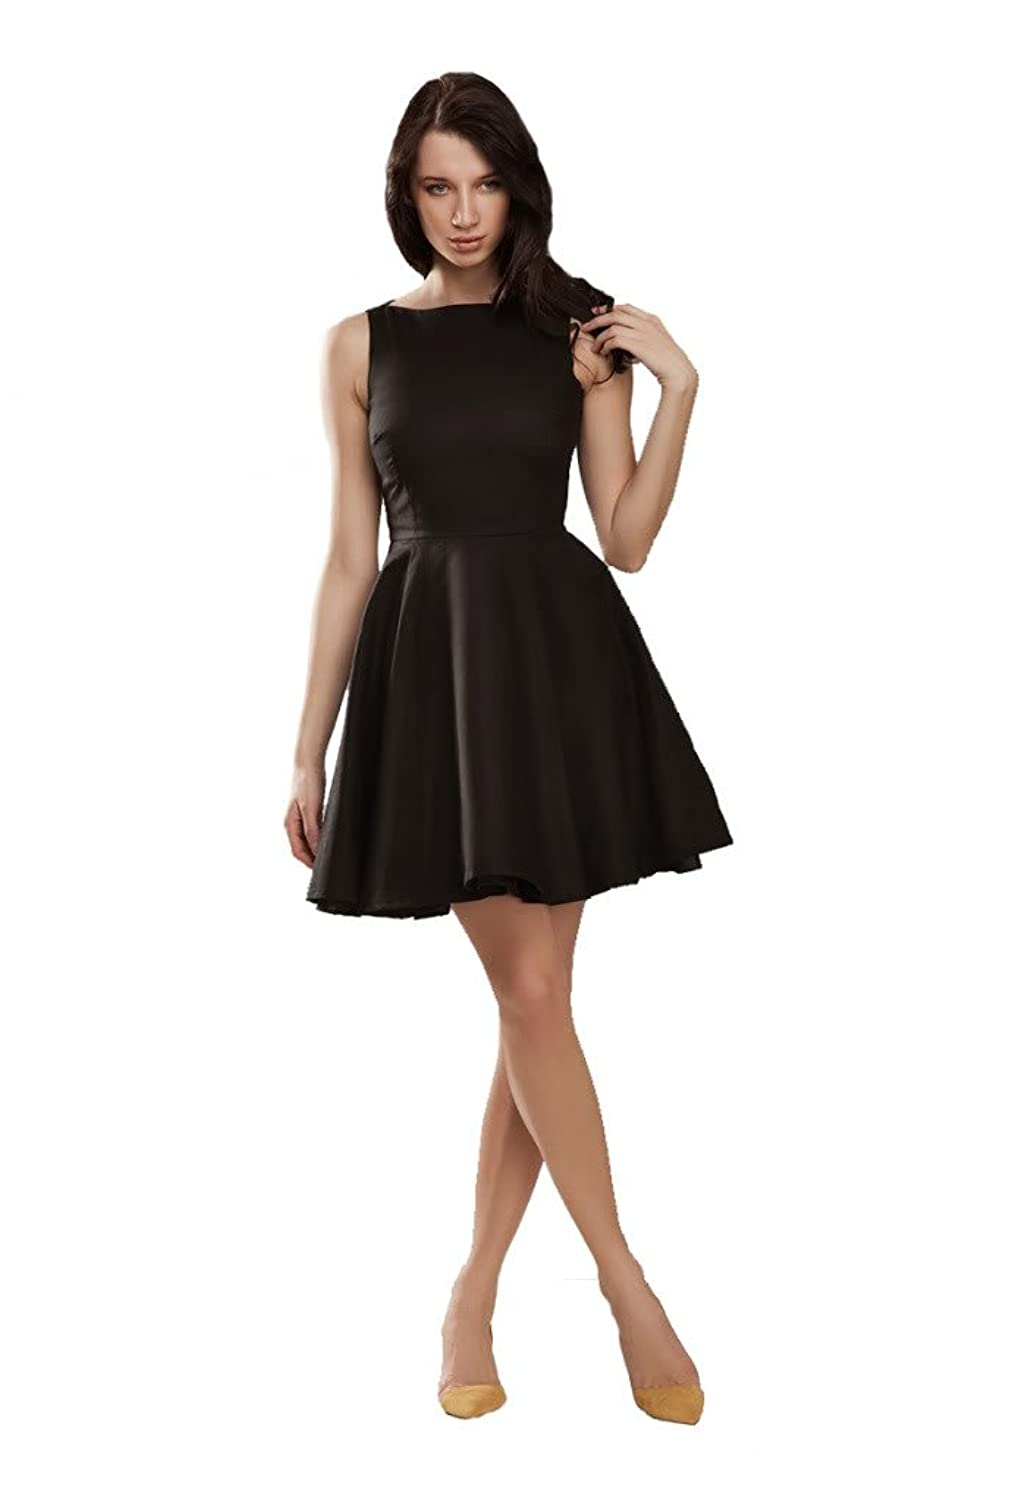 Petite robe noire taille 44